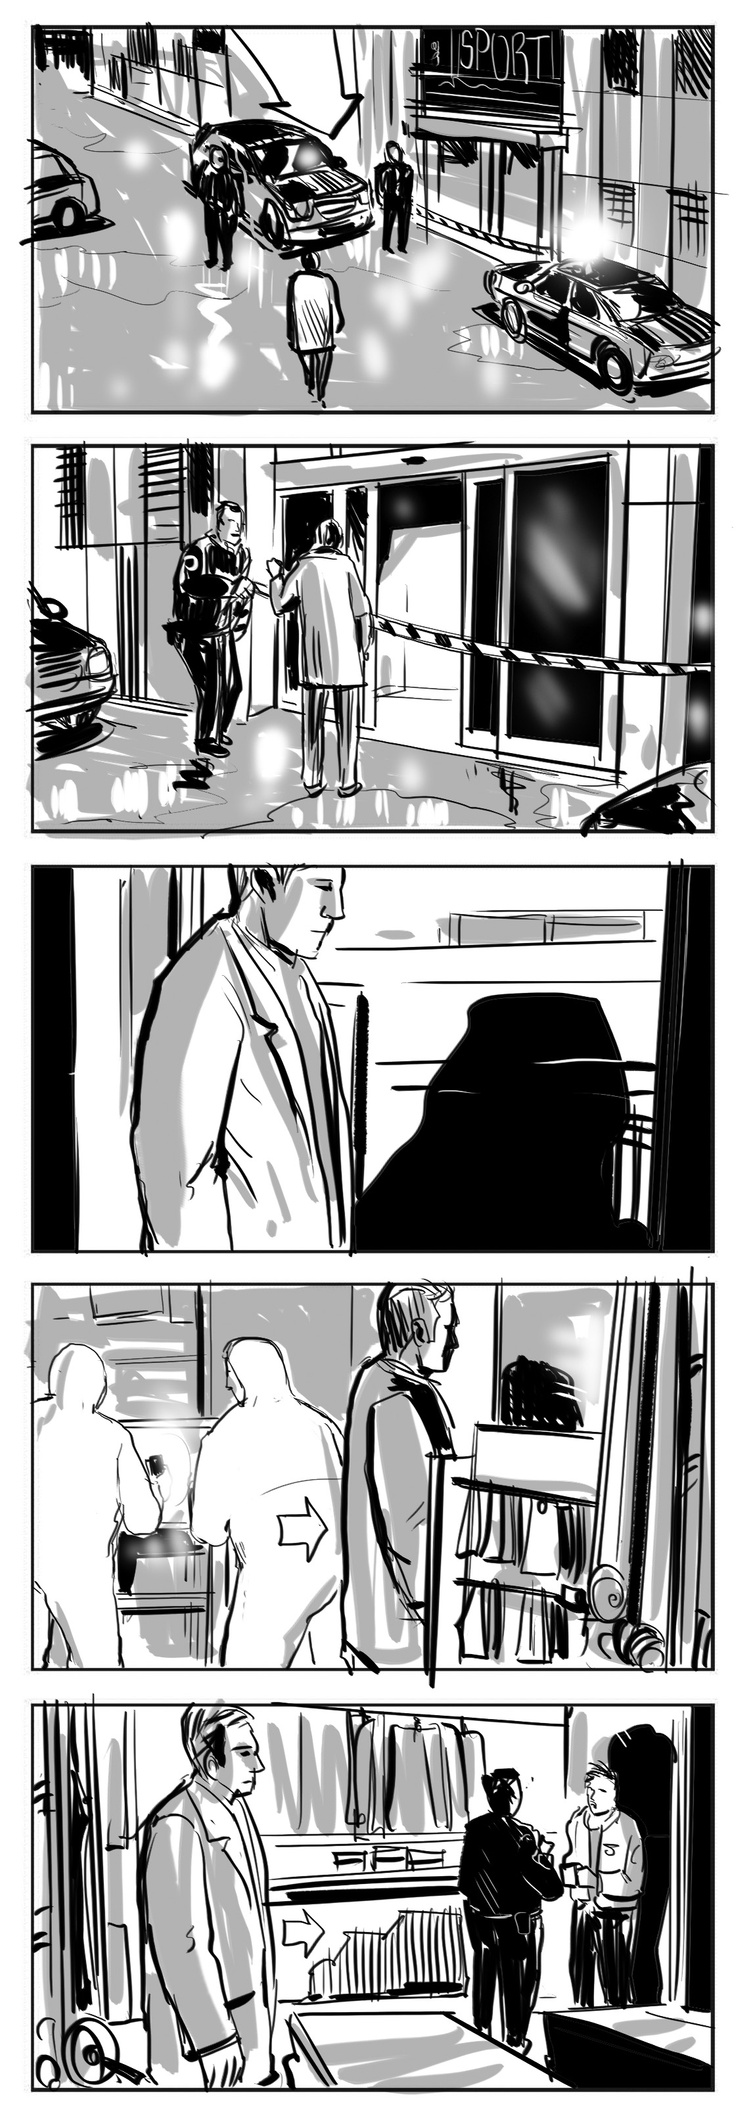 Storyboard for TV Commercial by Giuseppe Cristiano  www.framingfilms.com